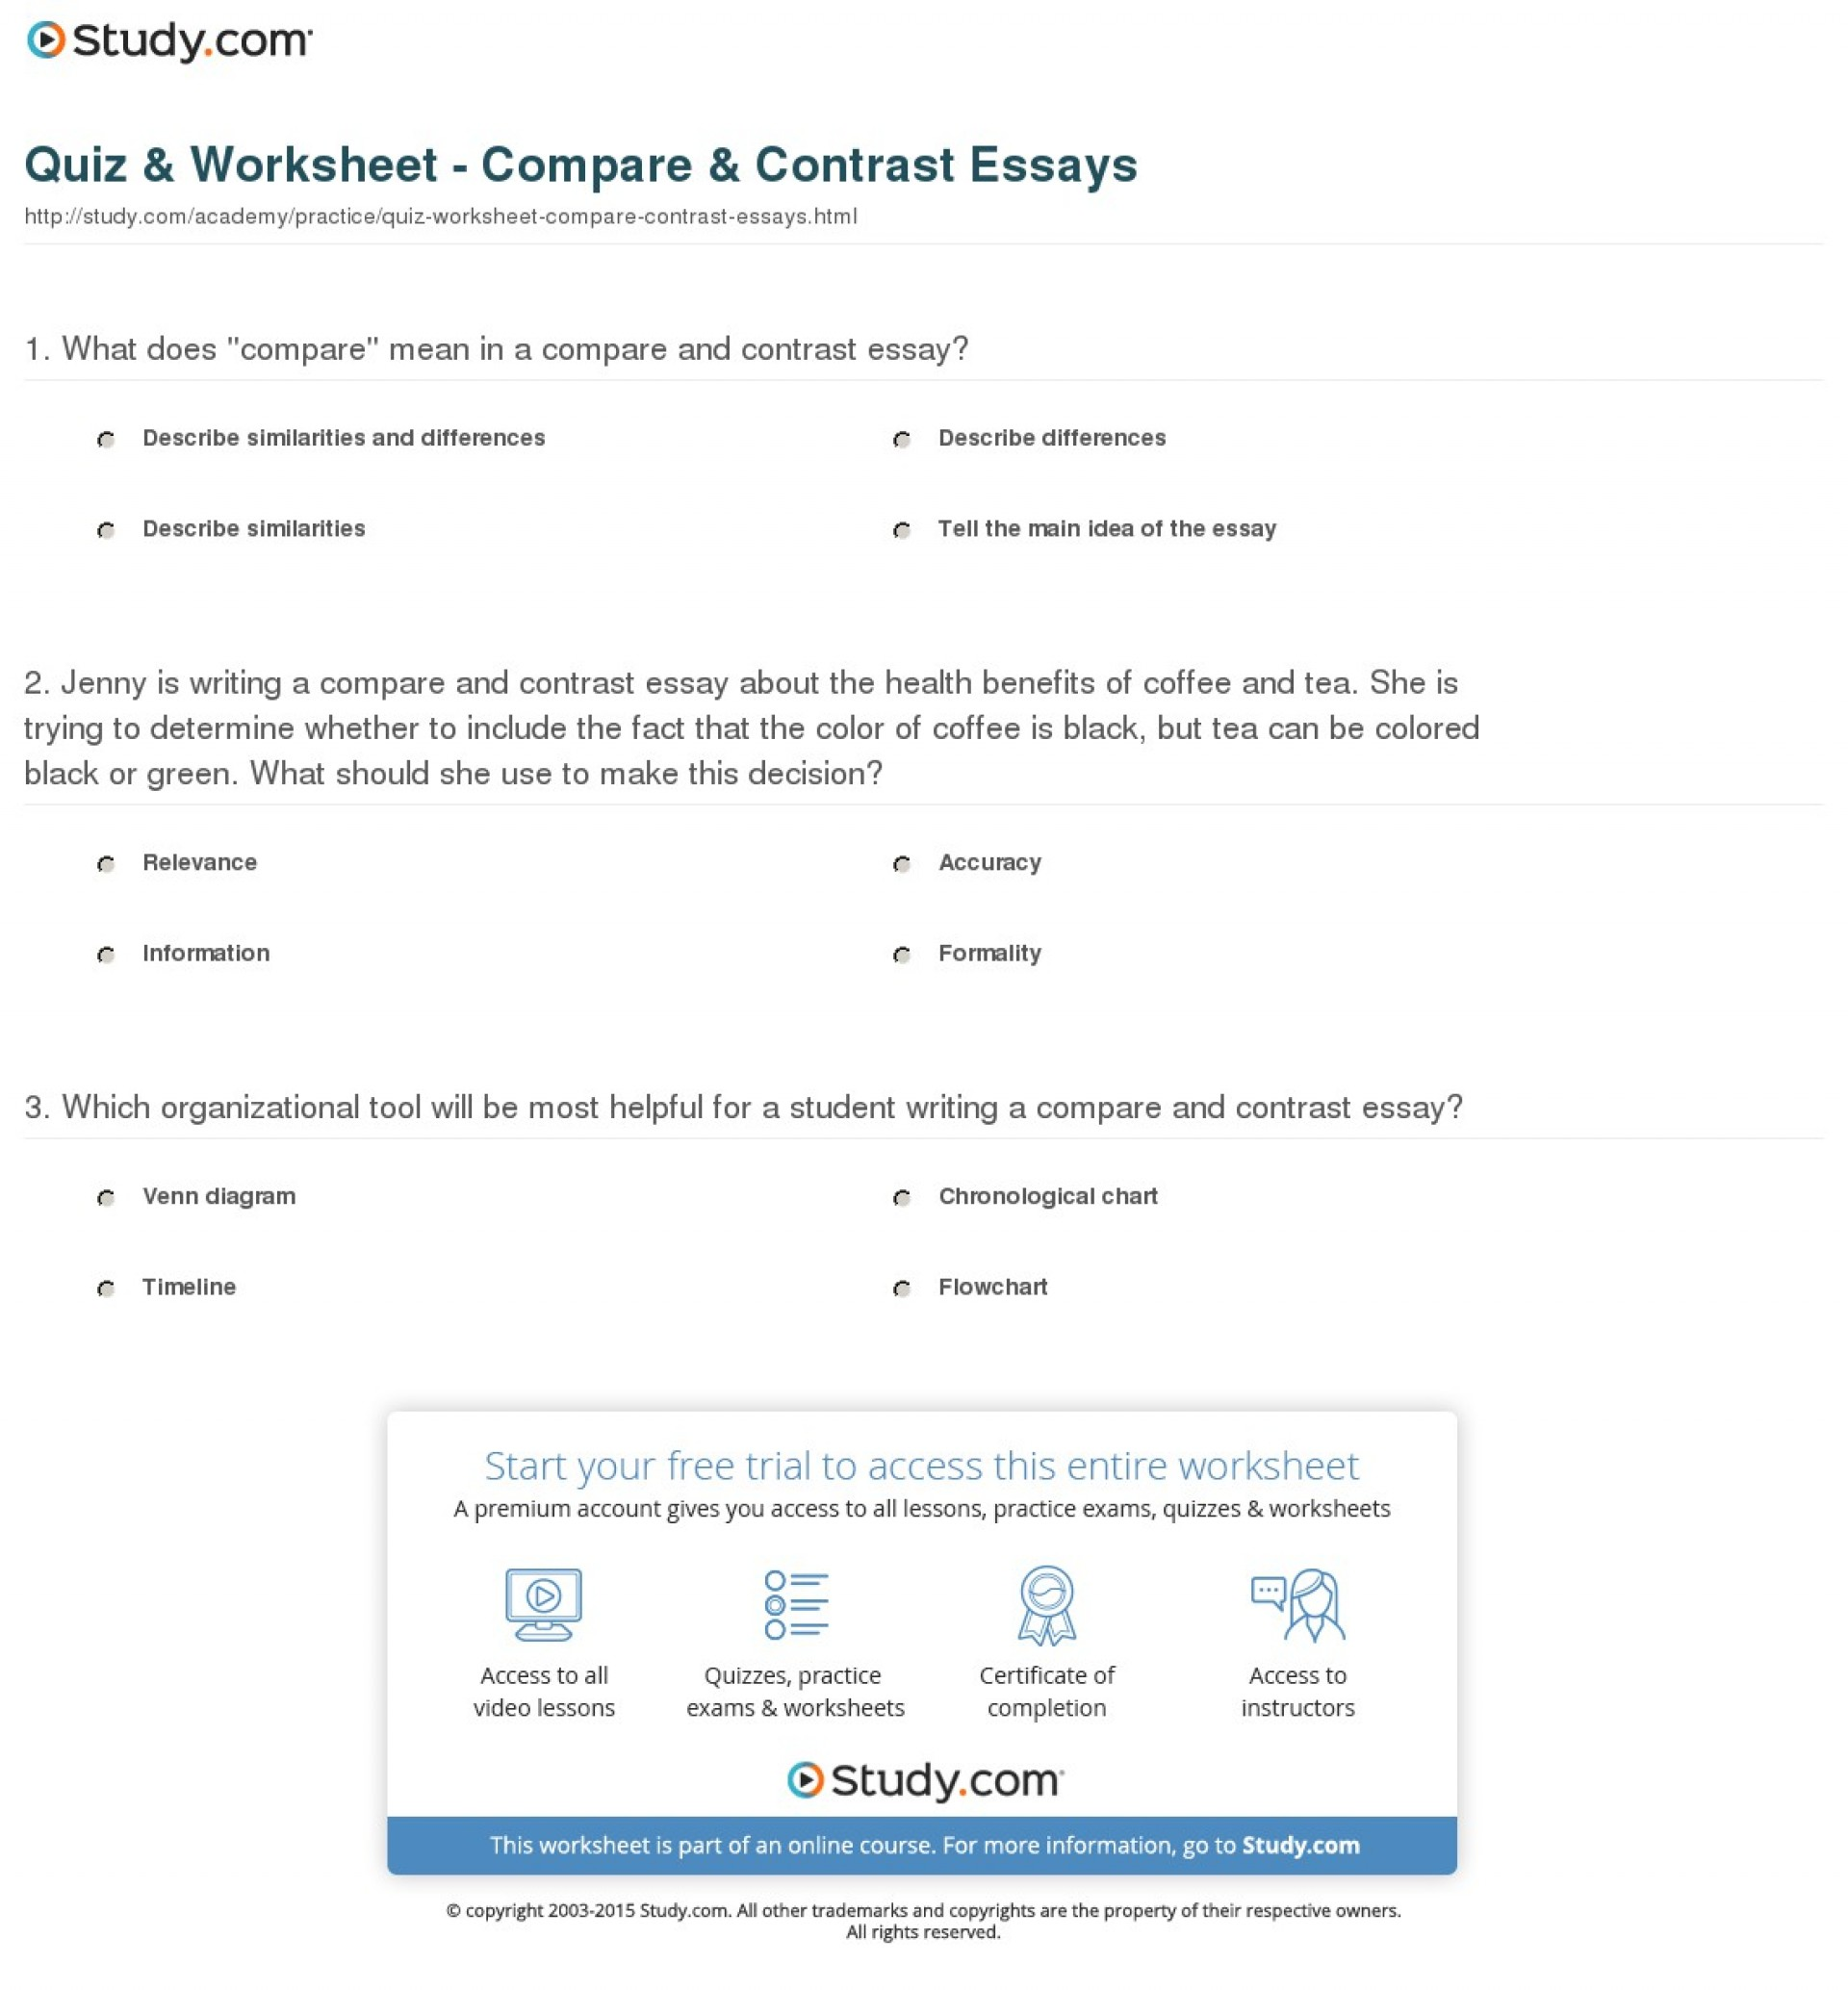 016 Quiz Worksheet Compare Contrast Essays Essay Example Comparing And Unique Contrasting Comparison Sample Pdf Structure University Topics On Health 1920